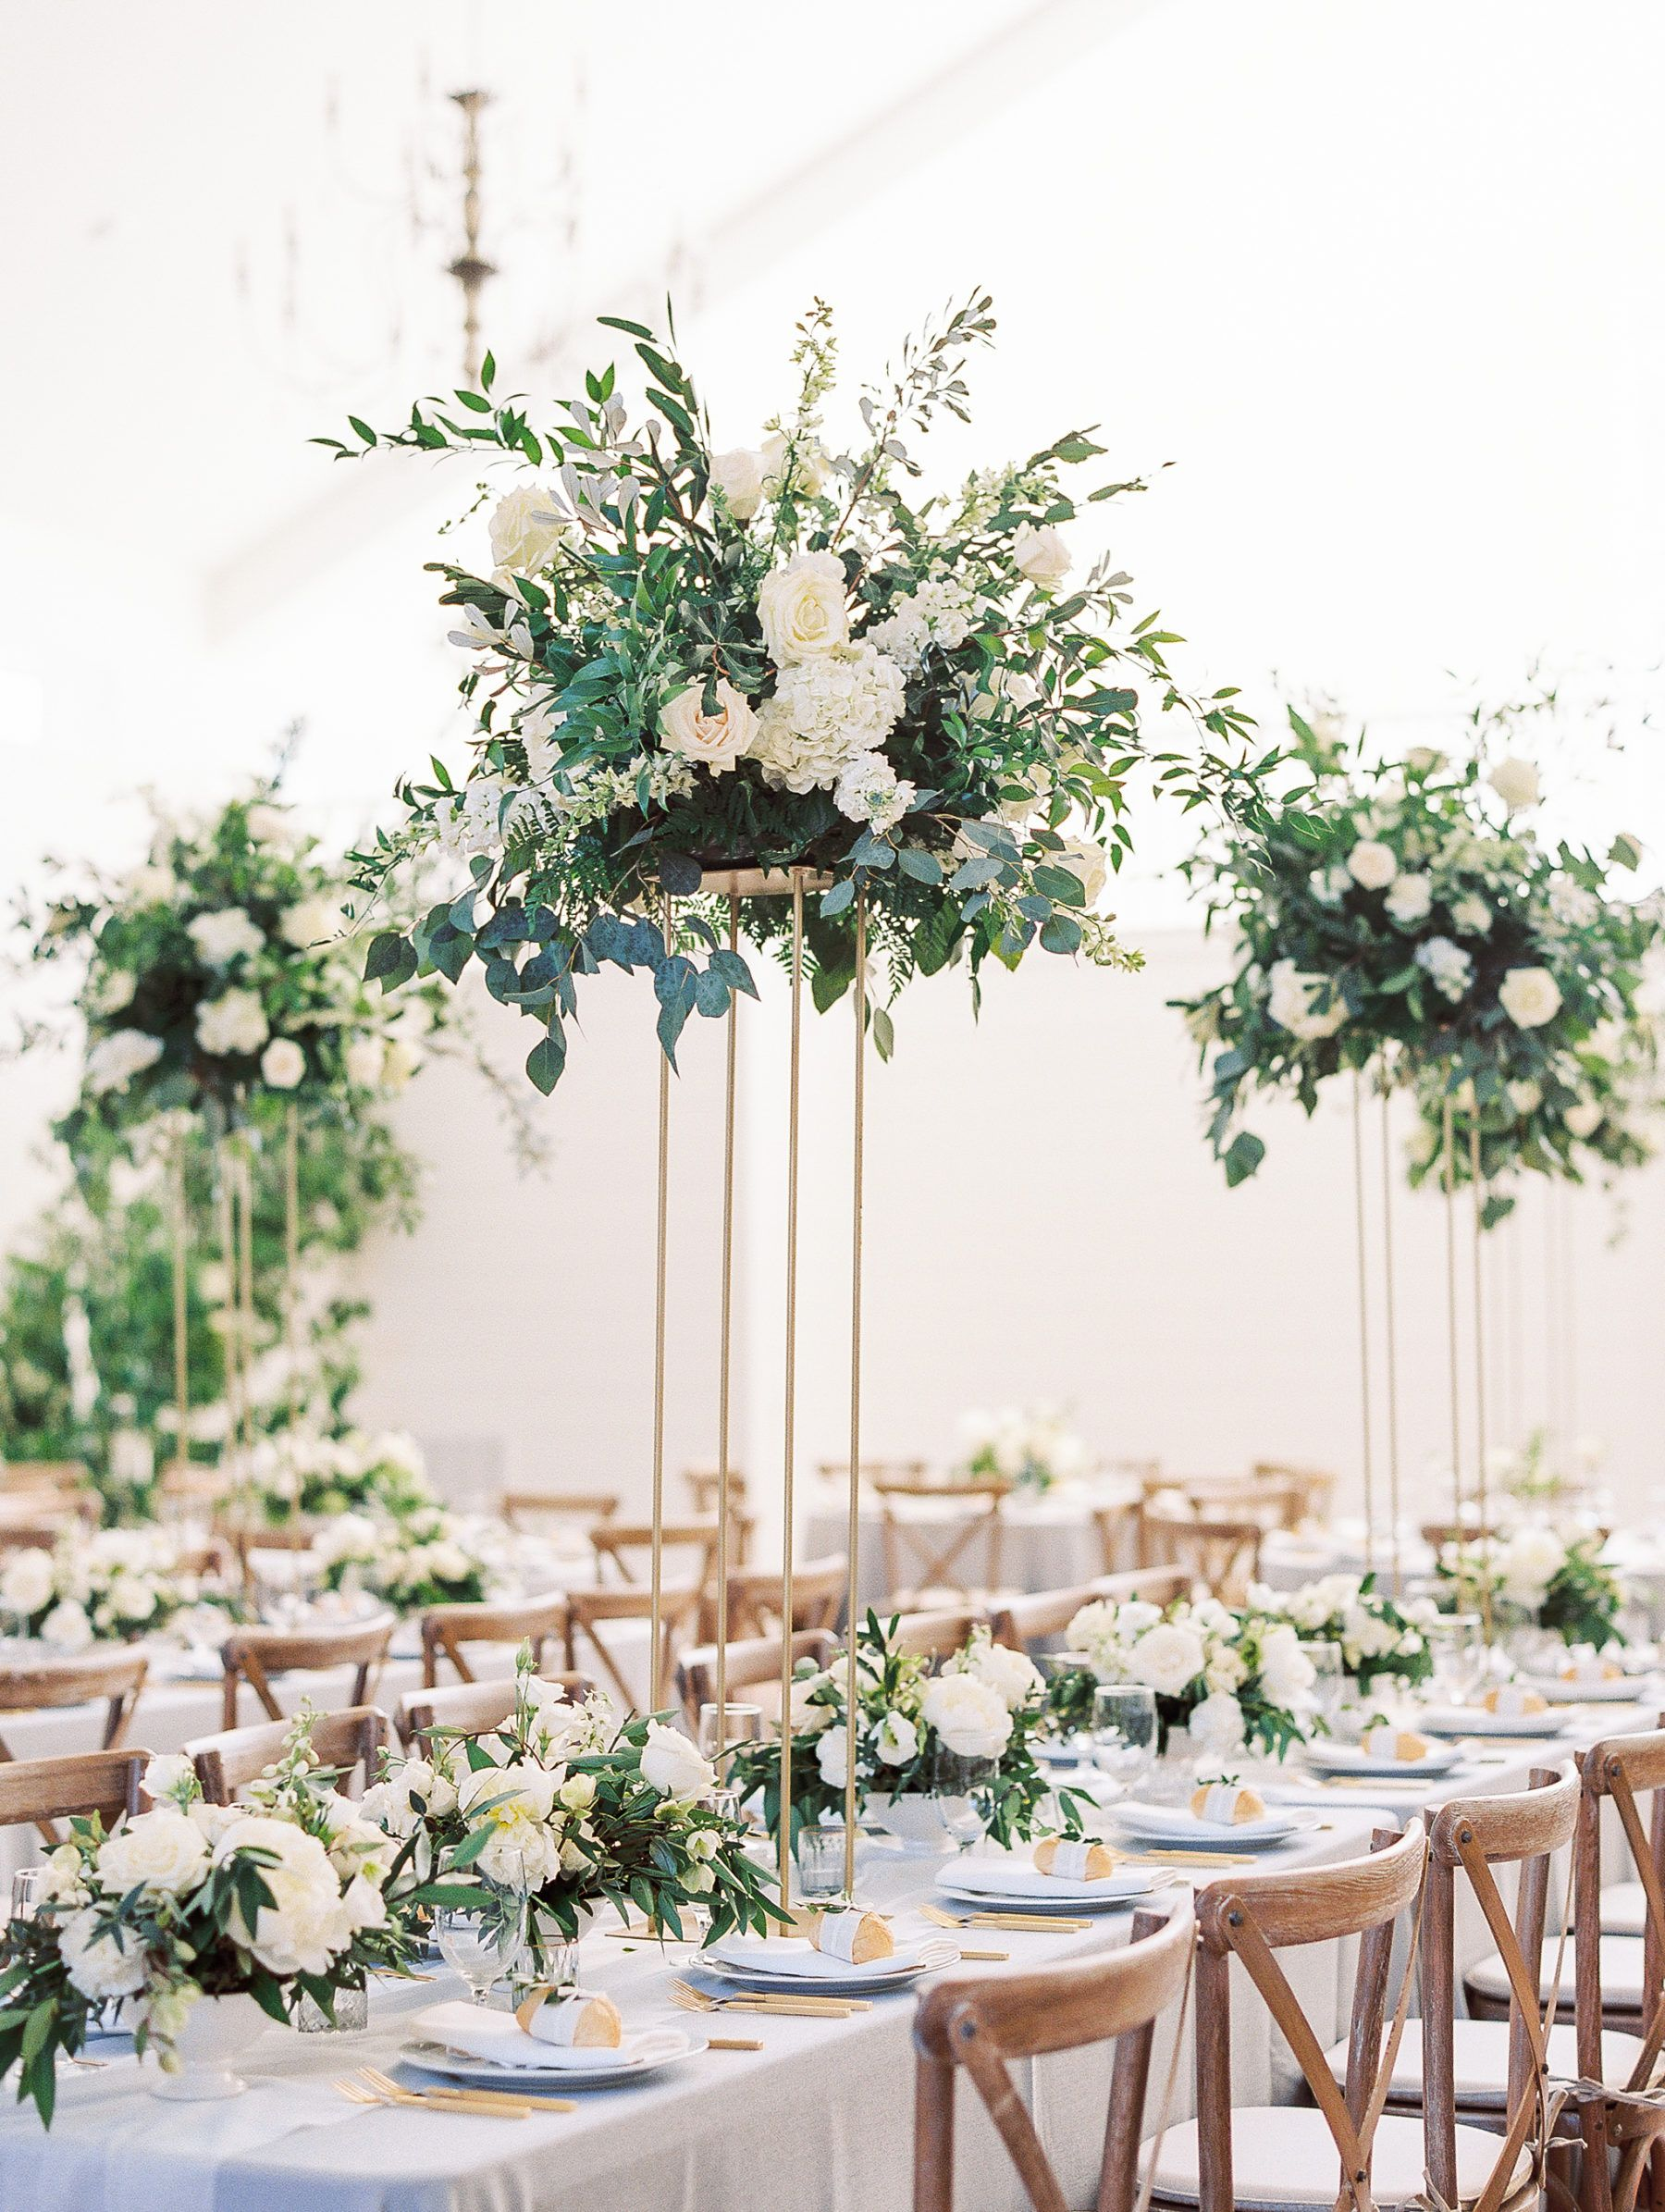 The Grandeur House Wedding With A Modern Farmhouse Style Used Wedding Decor Wedding Centerpieces Wedding Floral Centerpieces